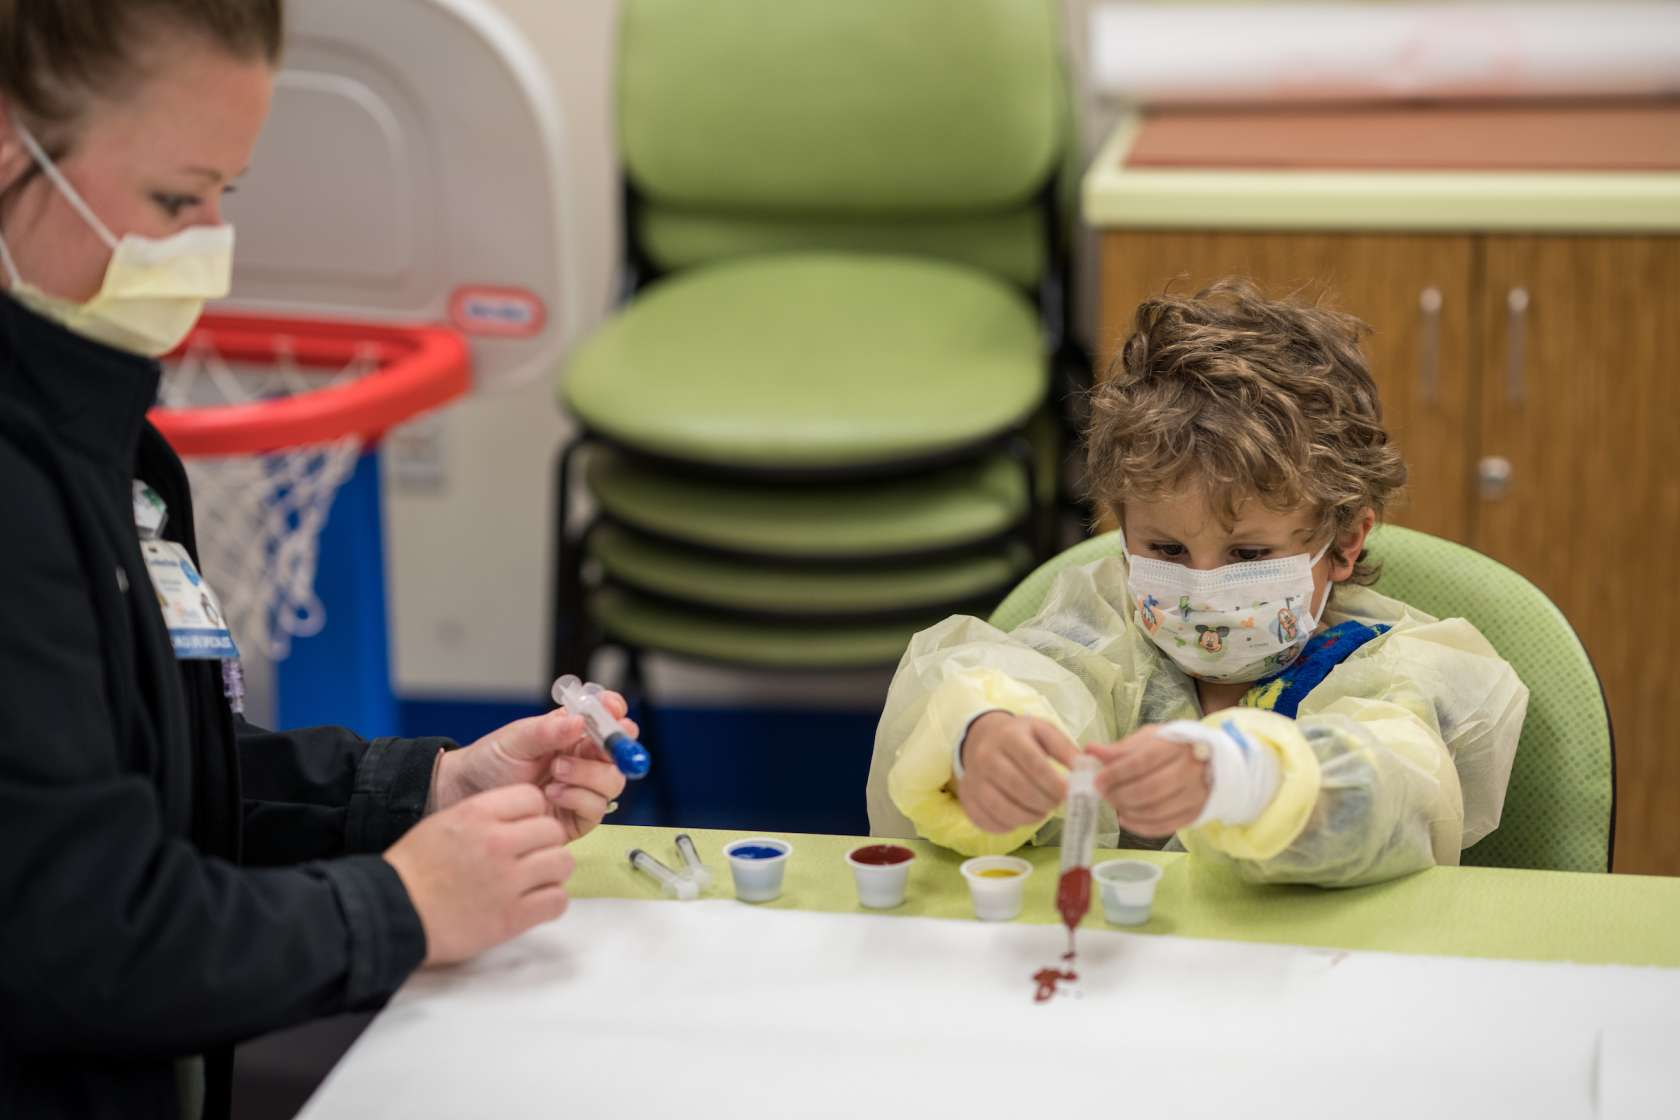 Caroline Erwin, Child Life Specialist, spends some time with Benjamin, five years old, creating art by syringe painting and also playing Foosball.